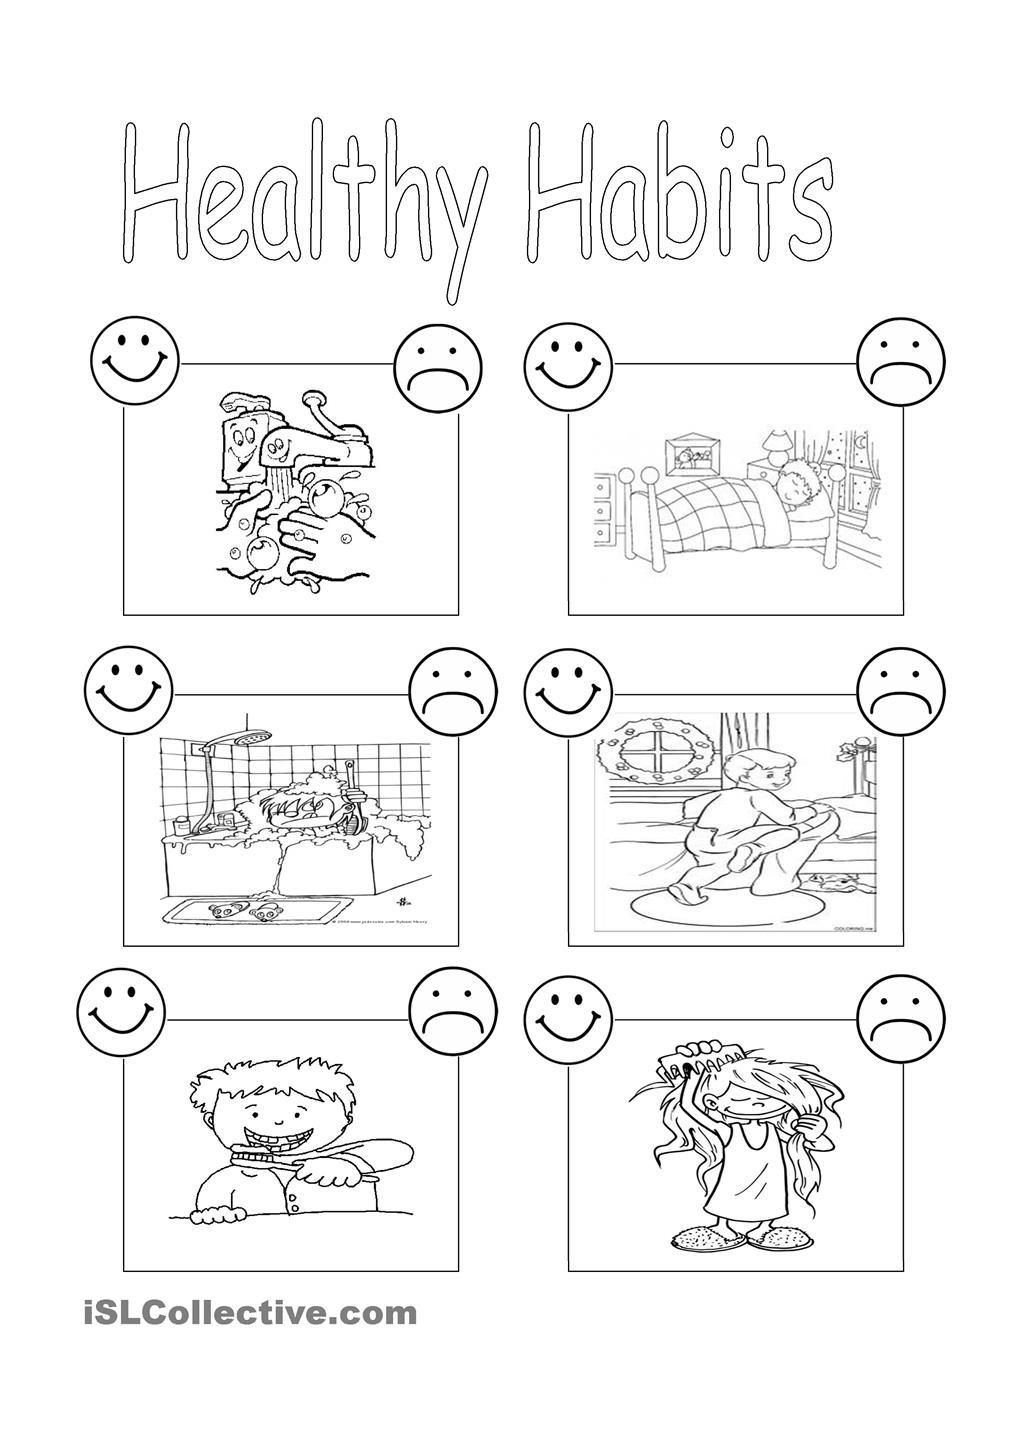 hight resolution of Healthy Habits Worksheets for Kindergarten   Worksheet for Kindergarten    Healthy habits for kids